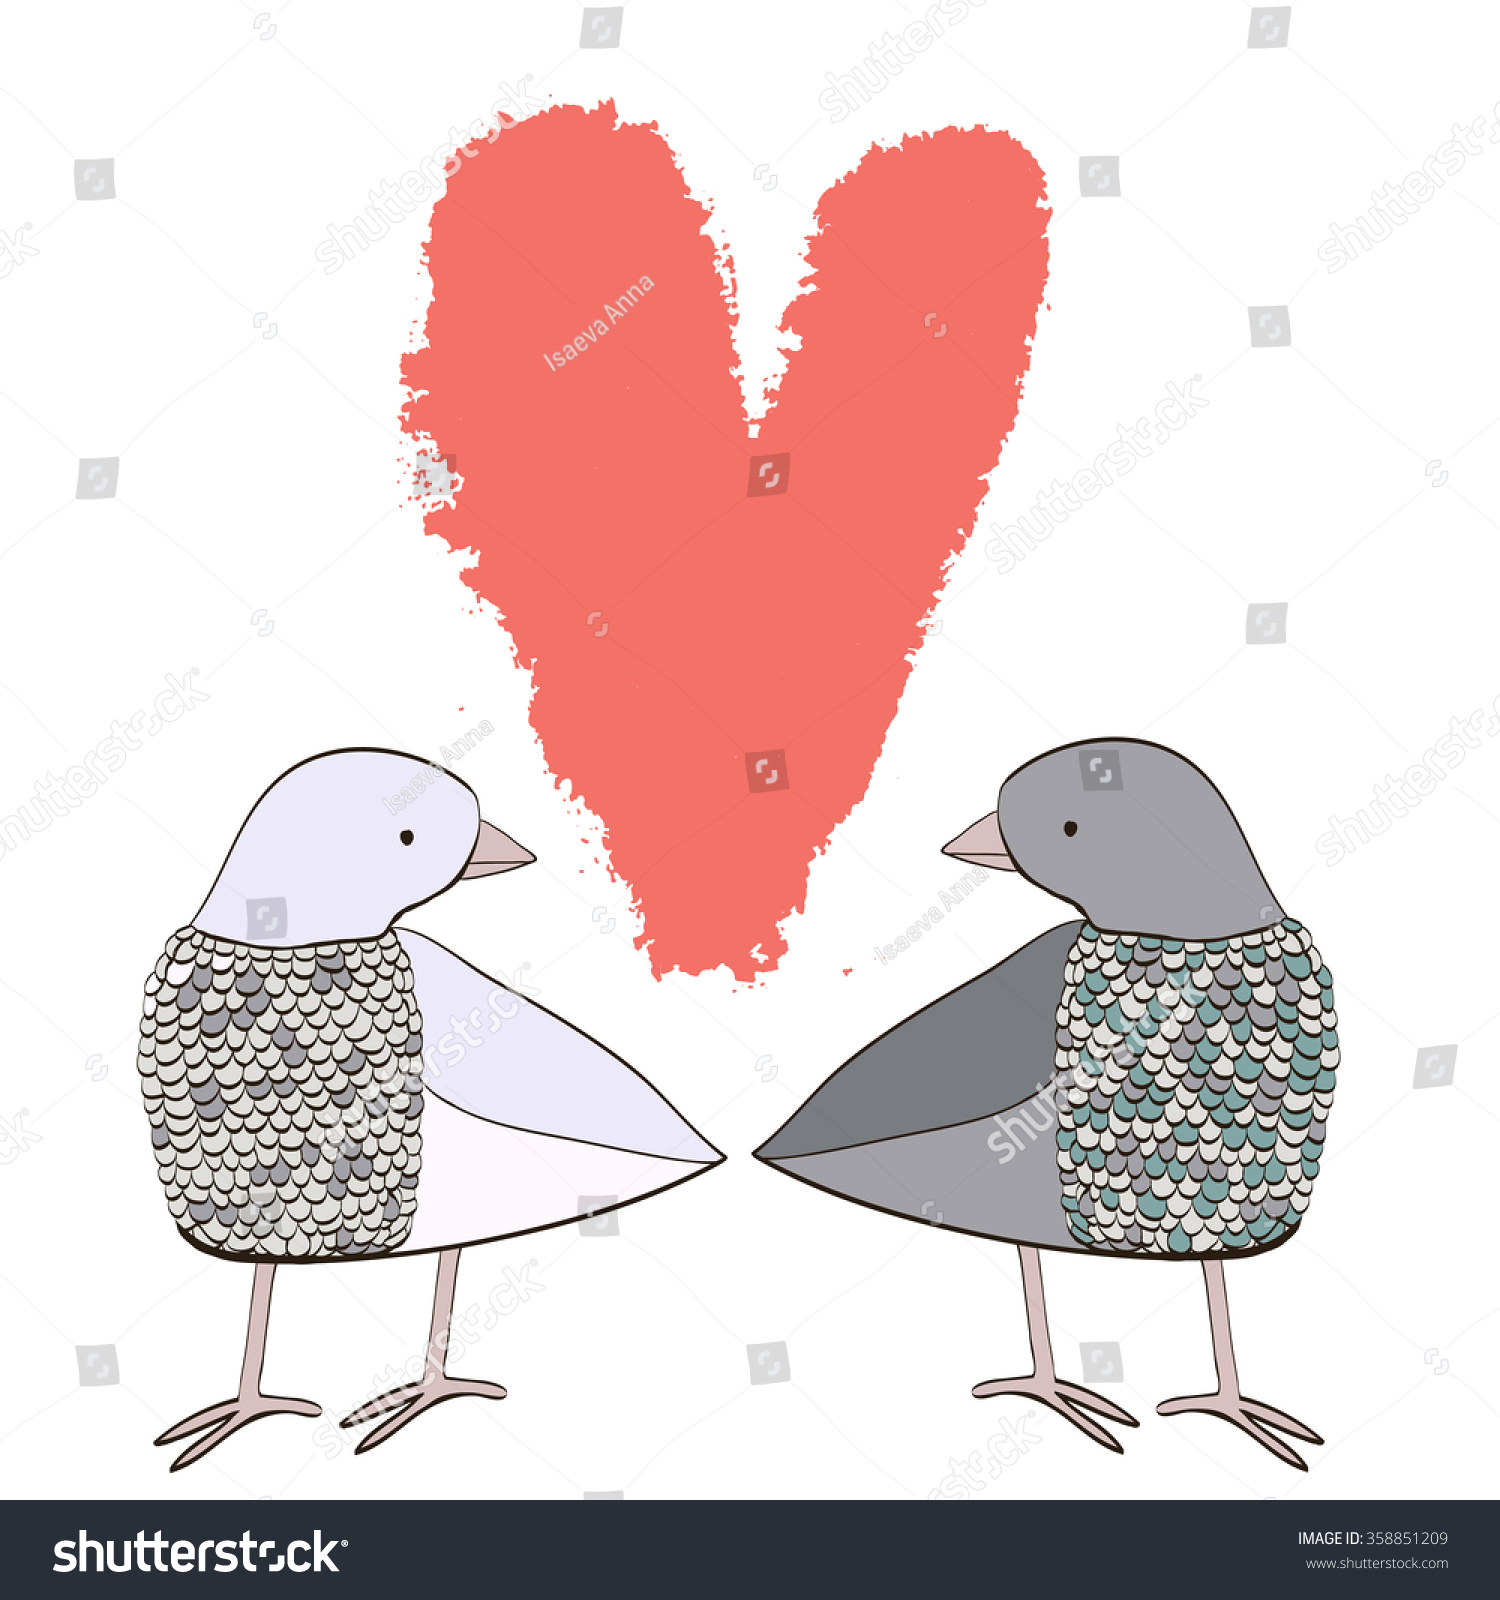 cartoon couple of doves in love with heart template for greeting card with happy wedding